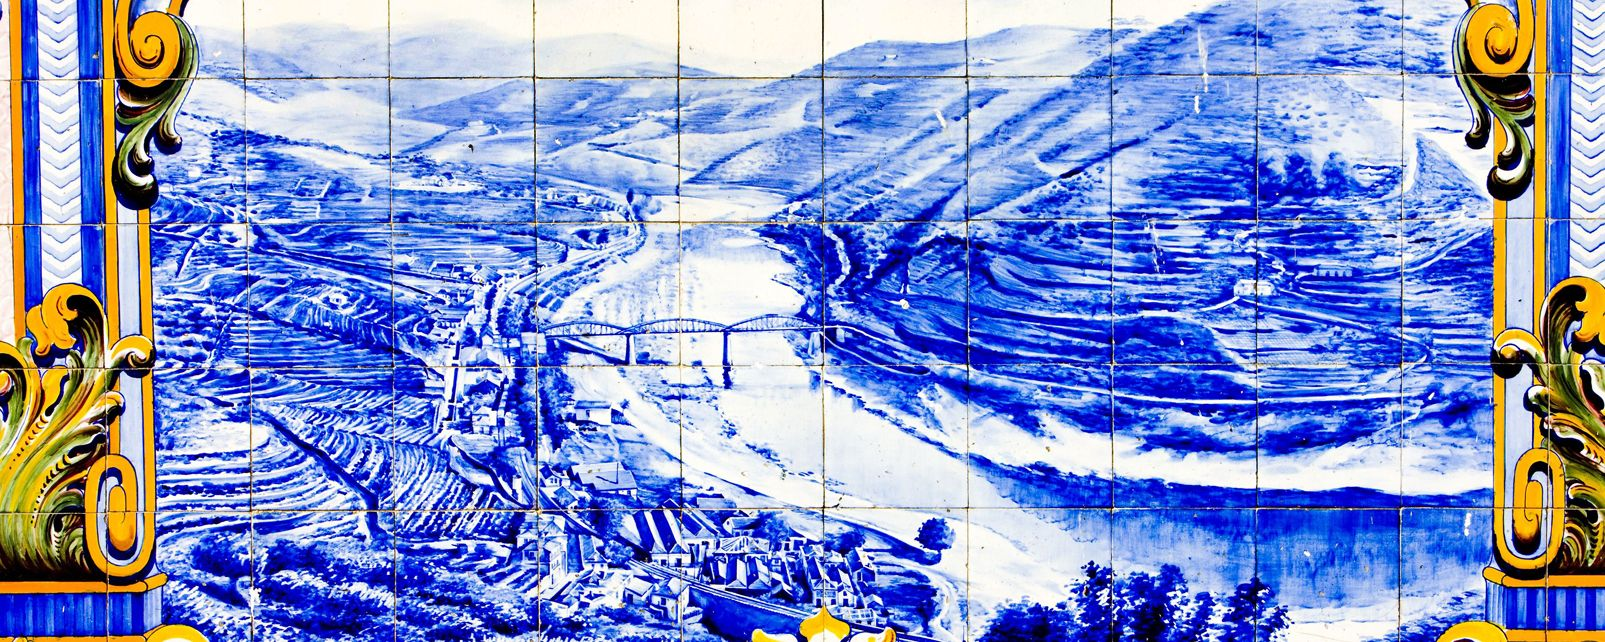 Azulejos , Azulejos tiles at Pinhao railway station , Portugal